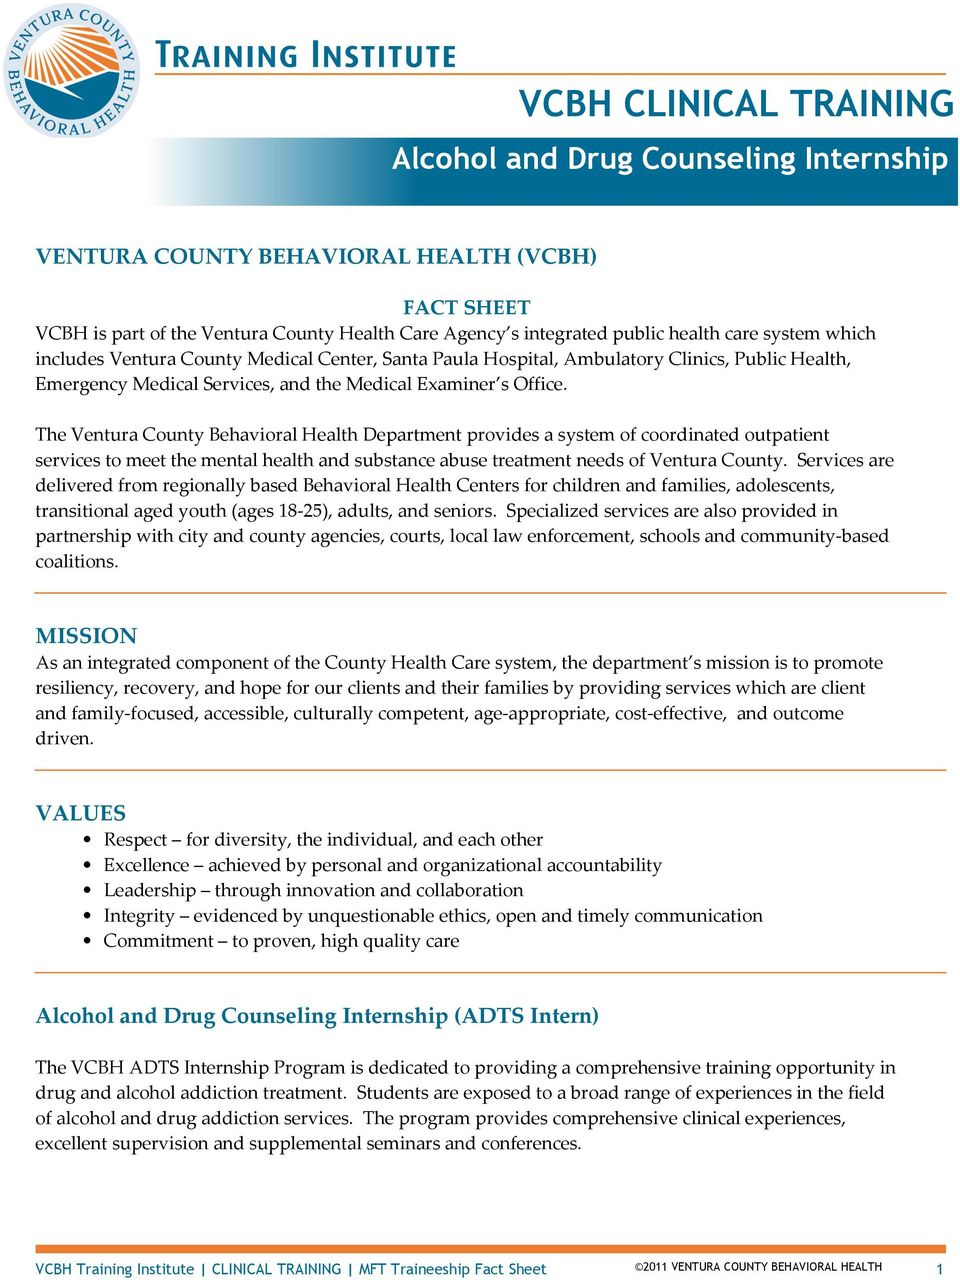 The Ventura County Behavioral Health Department provides a system of coordinated outpatient services to meet the mental health and substance abuse treatment needs of Ventura County.